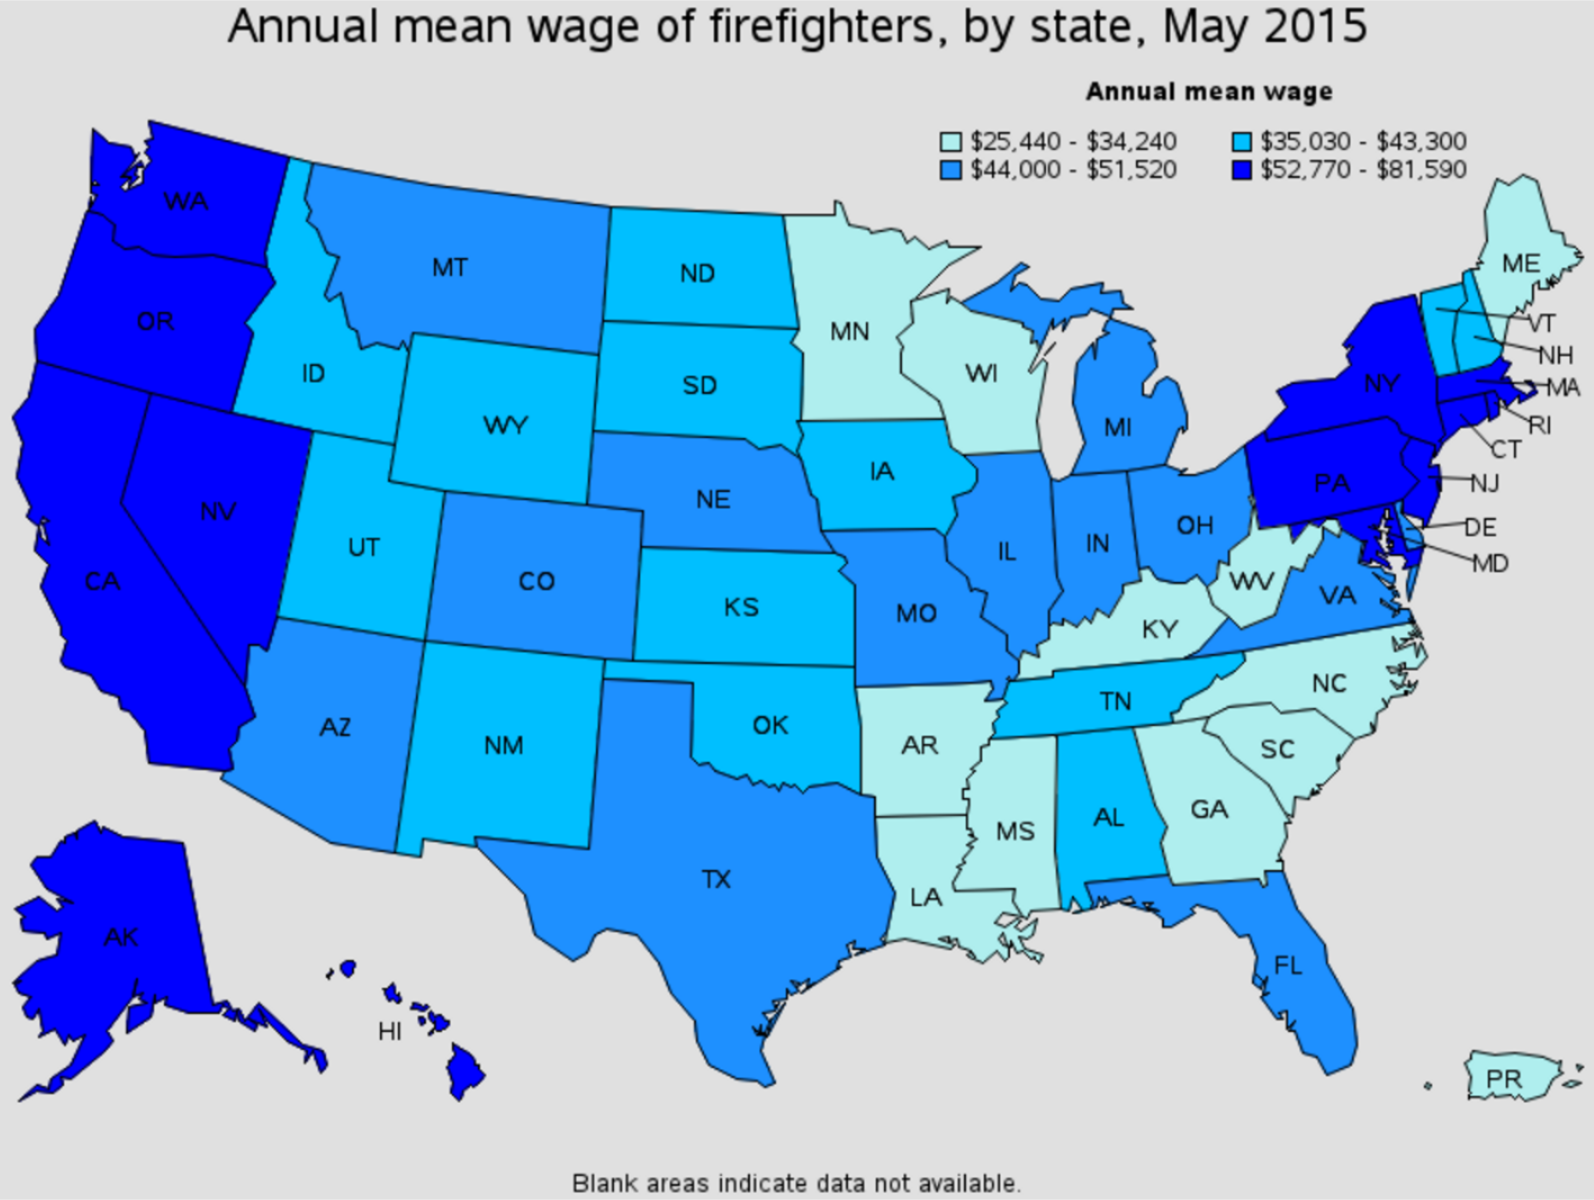 firefighter average salary by state Olathe Kansas